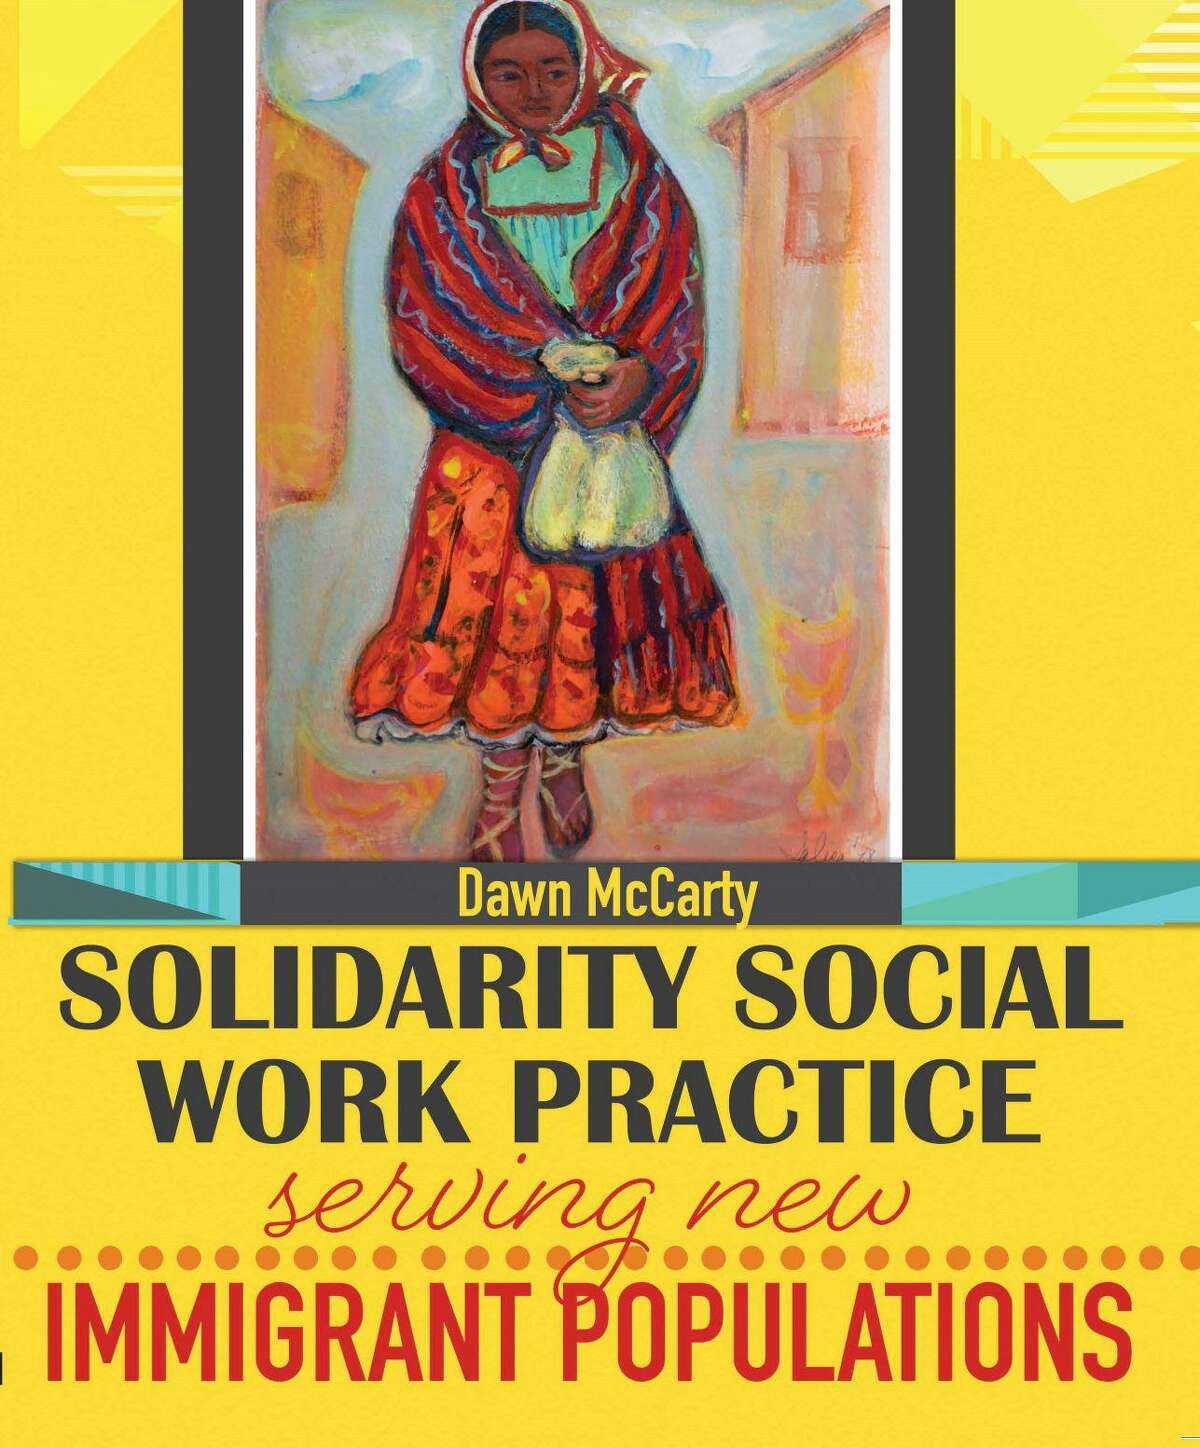 Dawn McCarty, associate professor of social work at the University of Houston-Downtown, has published the new textbook